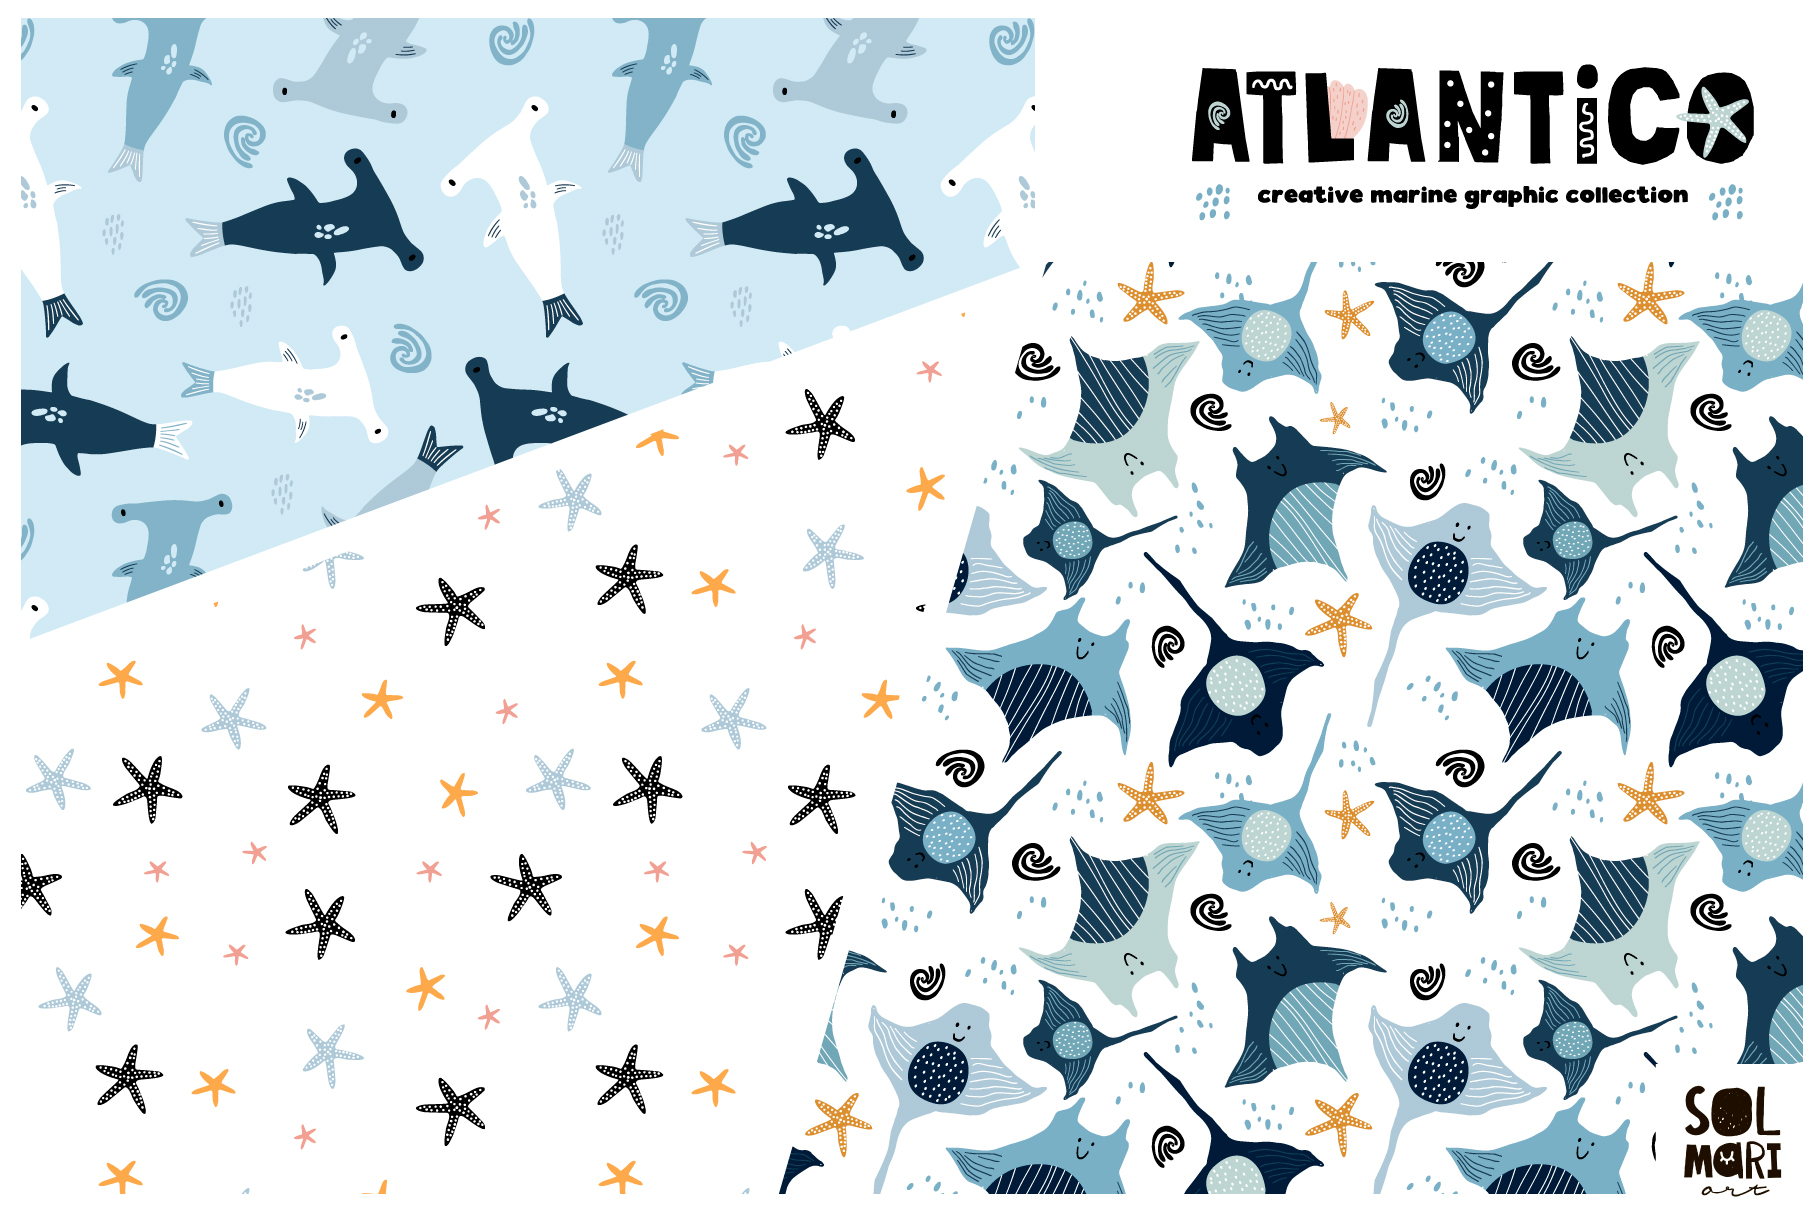 ATLANTICO. Marine graphic collection example image 3